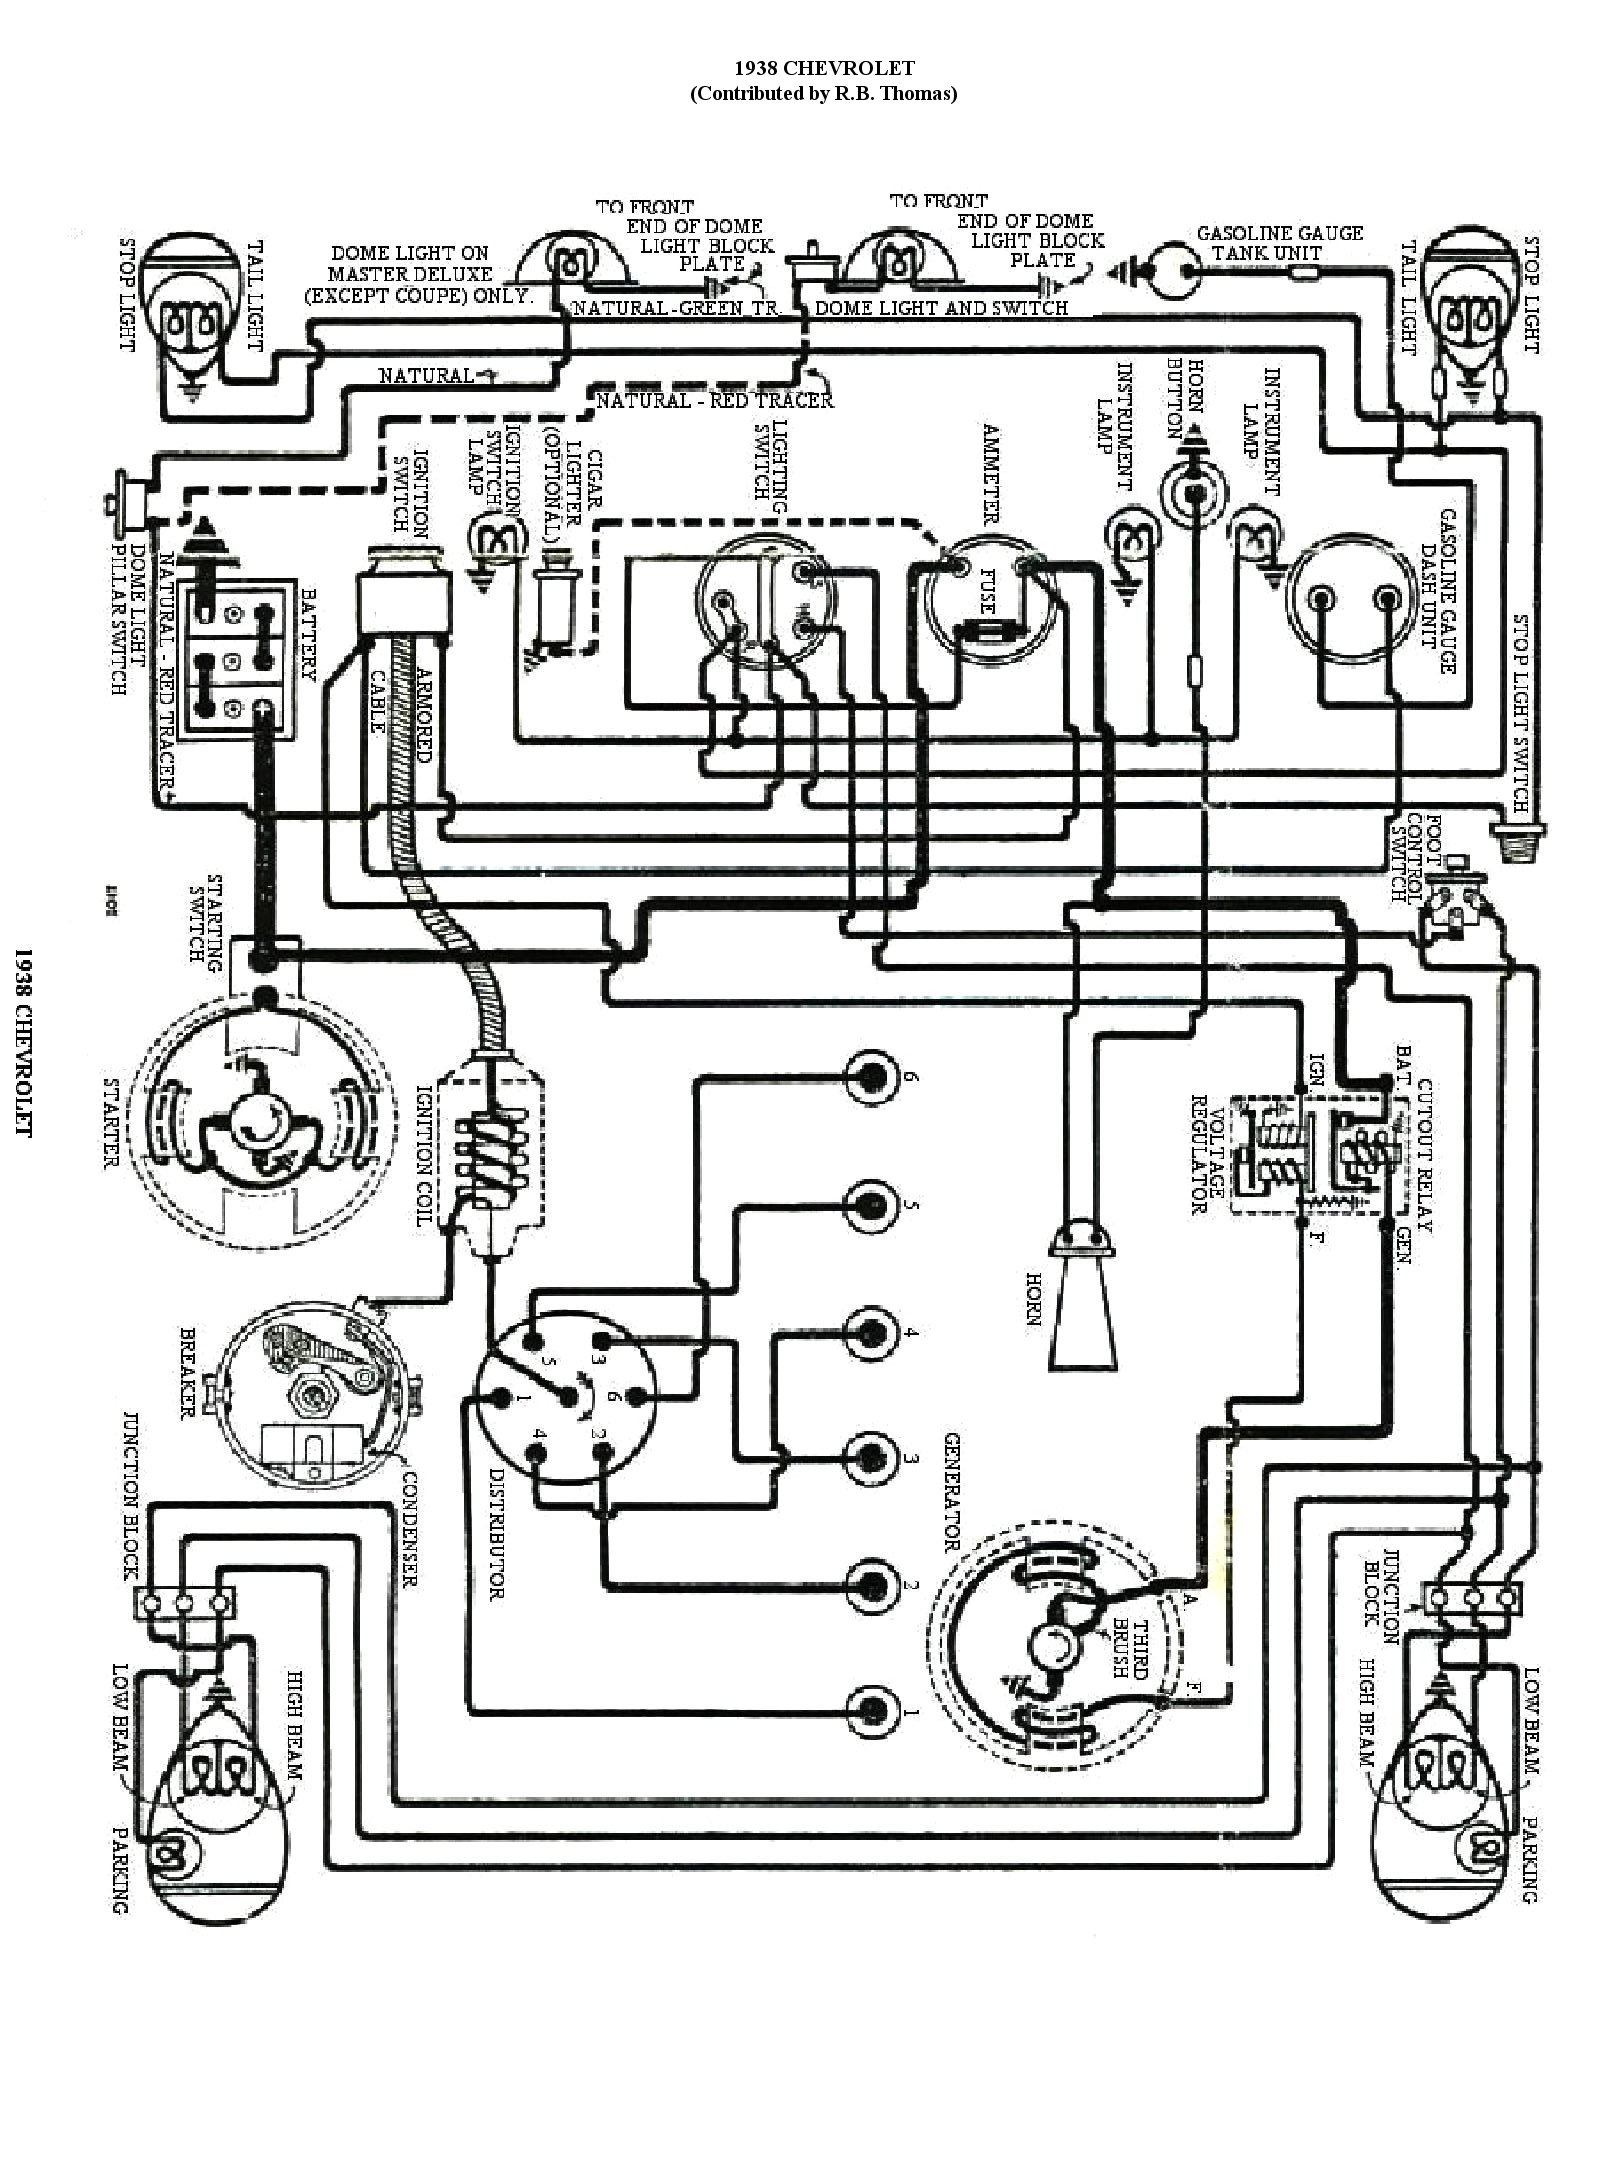 hight resolution of 1937 dodge wiring diagram wiring diagrams my 1937 dodge wire diagram